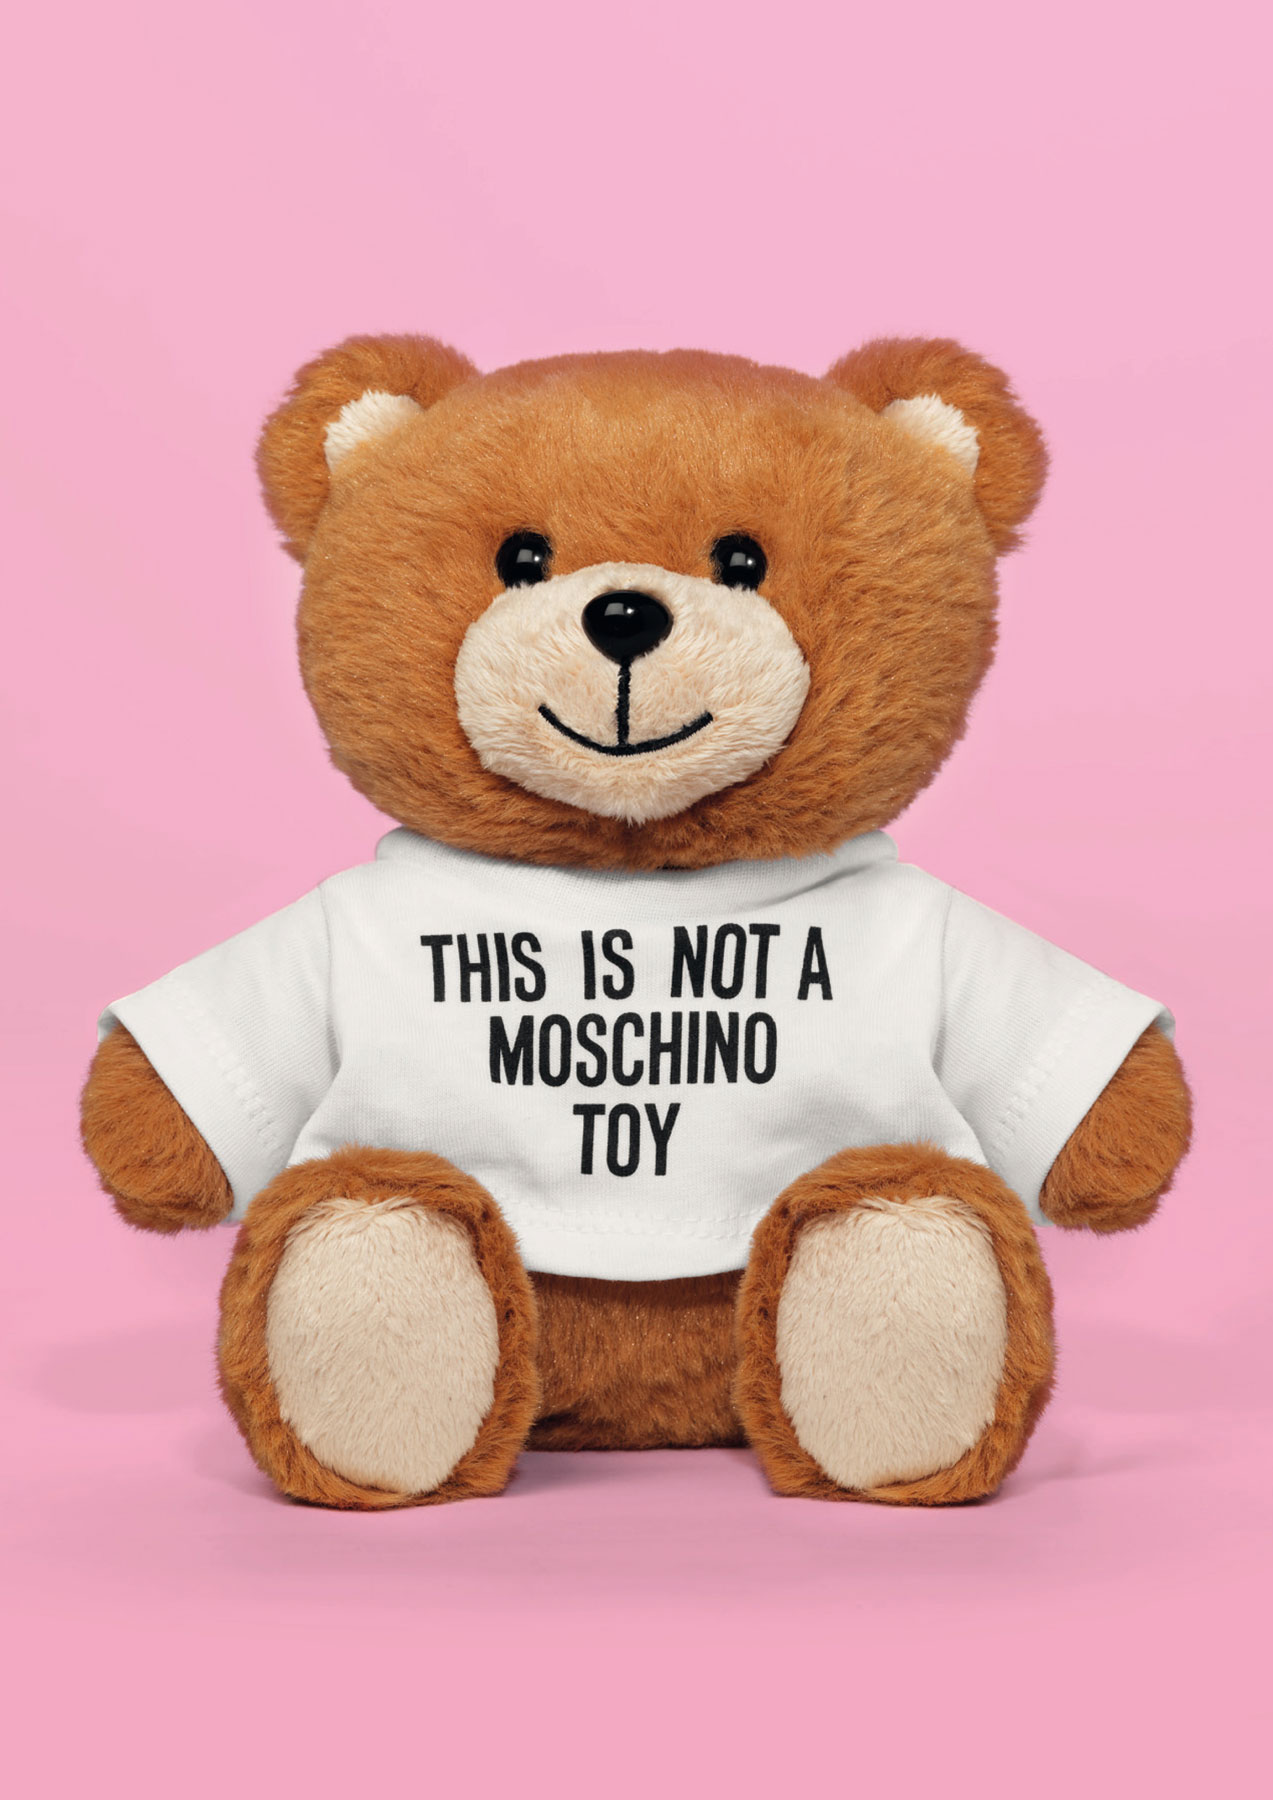 The Moschino Toy Is Not A Toy Harper S Bazaar Malaysia